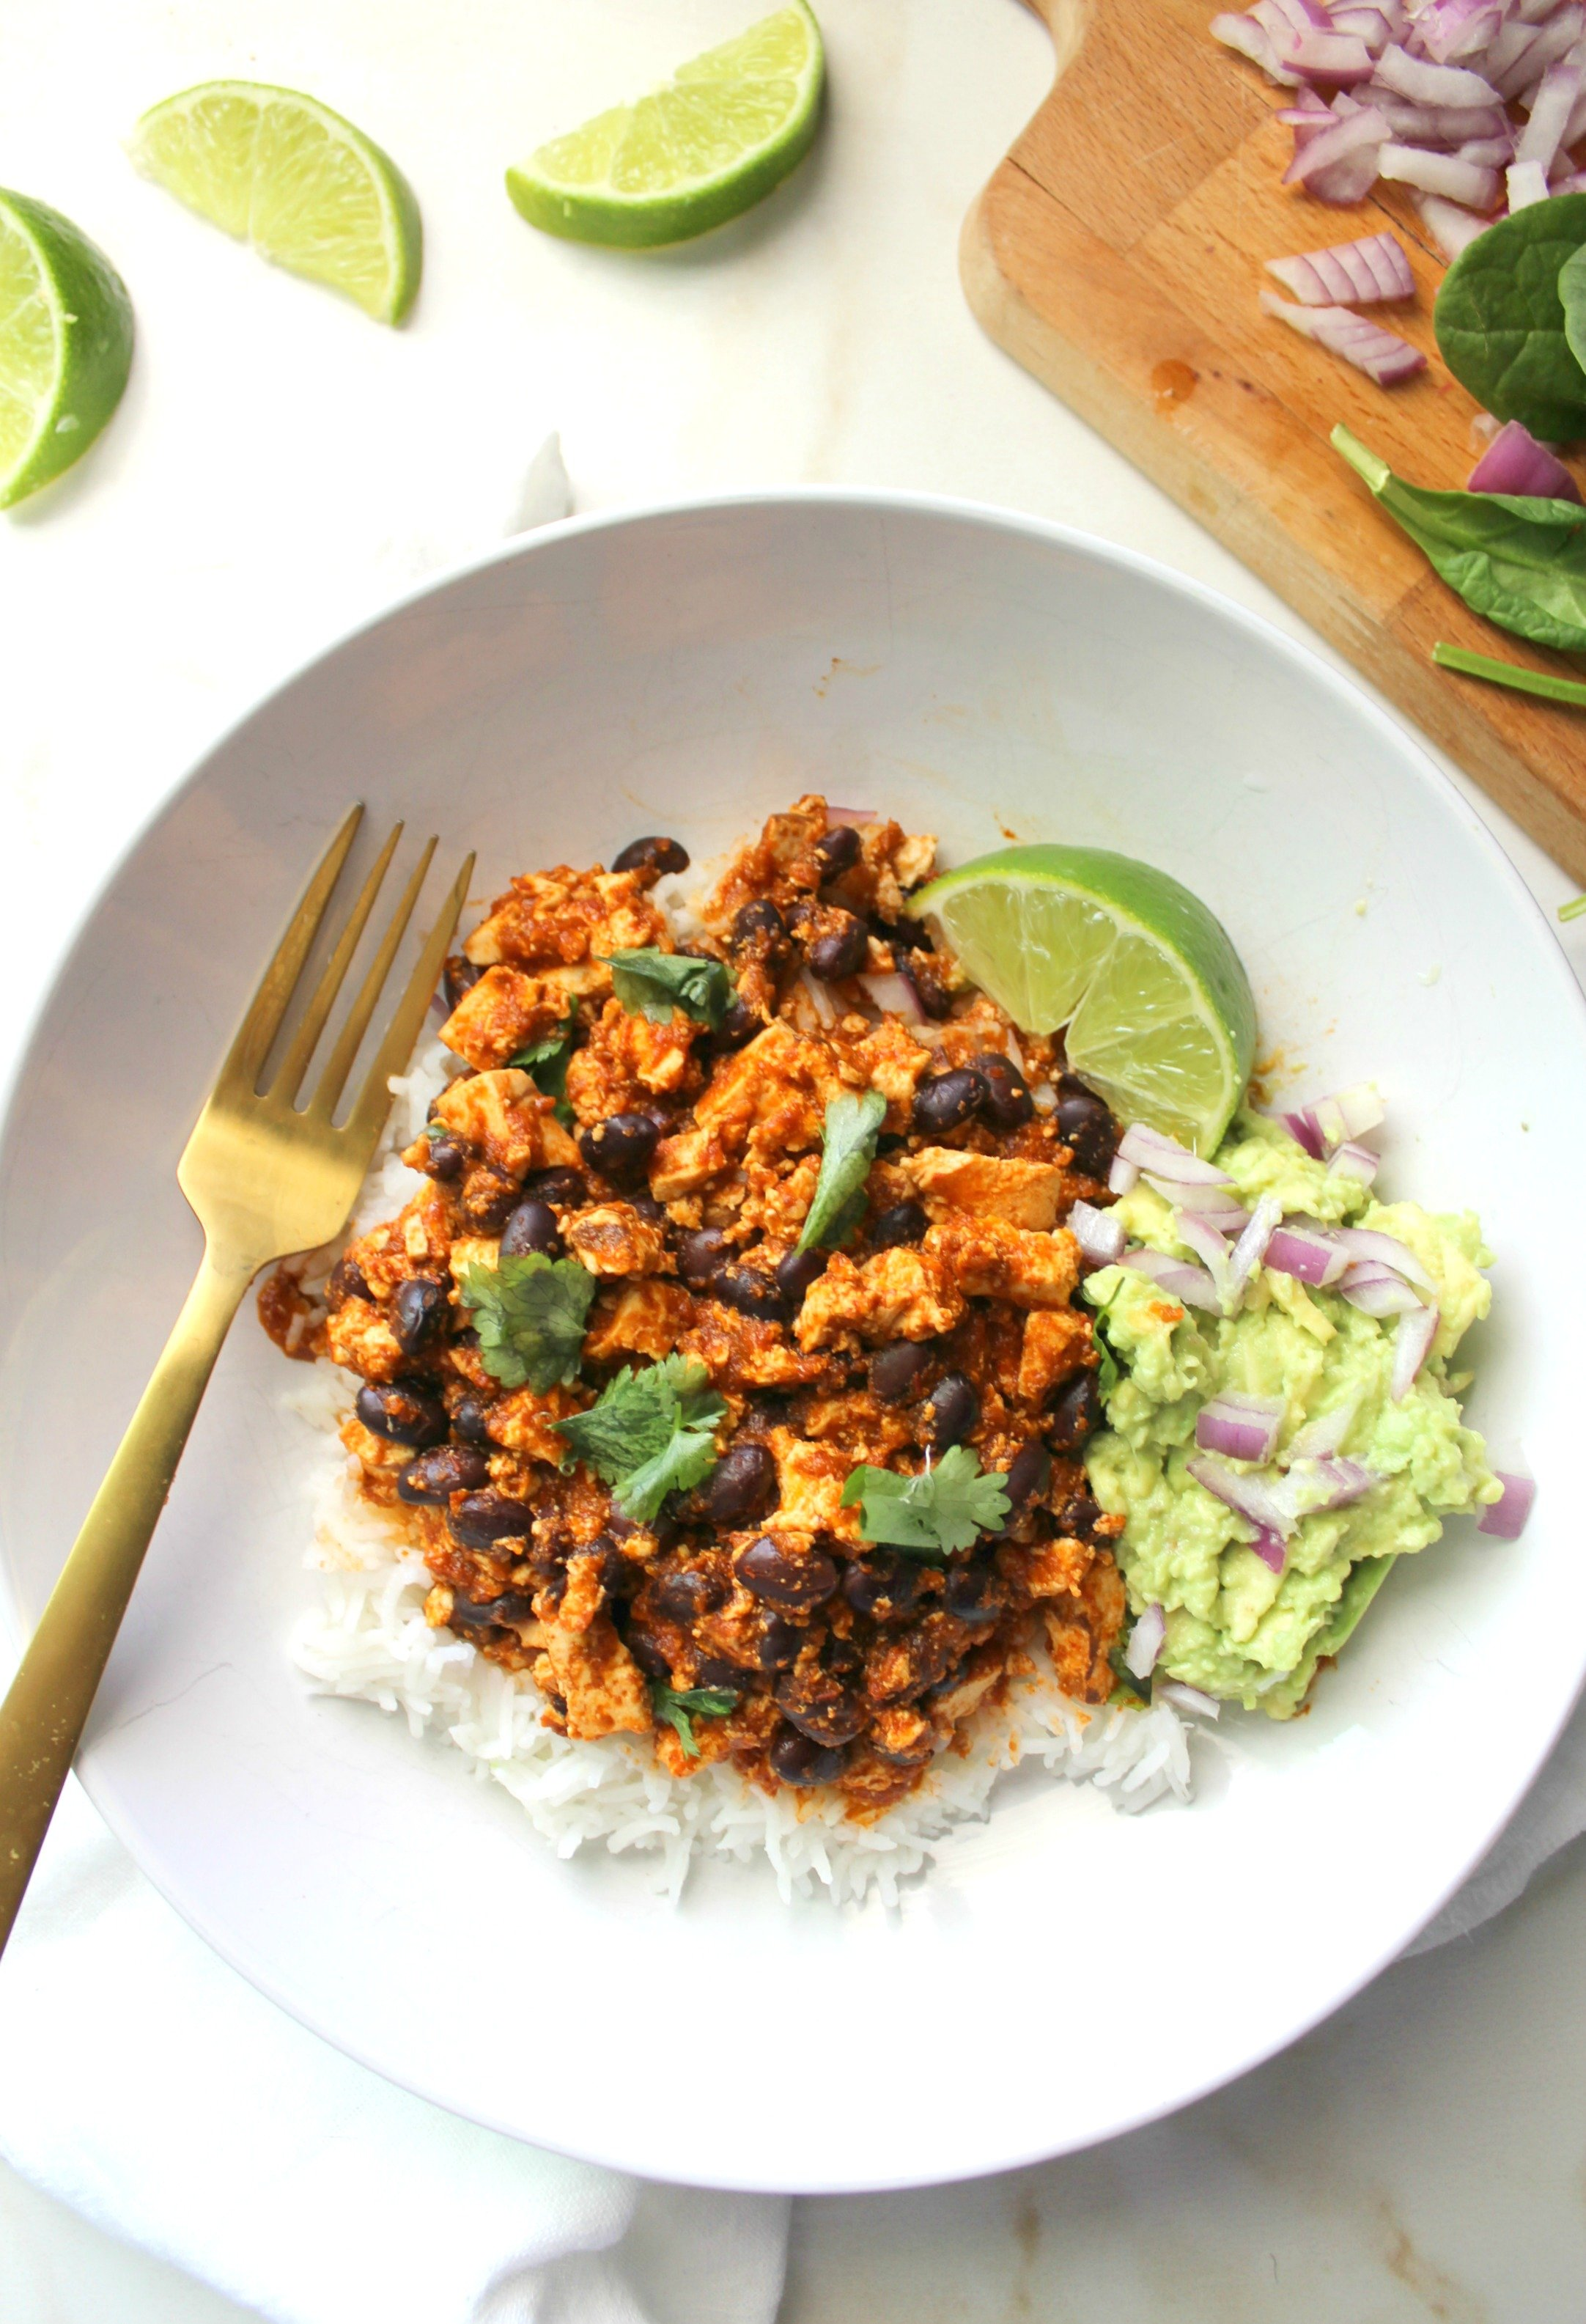 These Spicy Sofritas Black Bean Bowls are healthy, simple and super delicious. Perfect for meal prepping or busy weeknights   ThisSavoryVegan.com